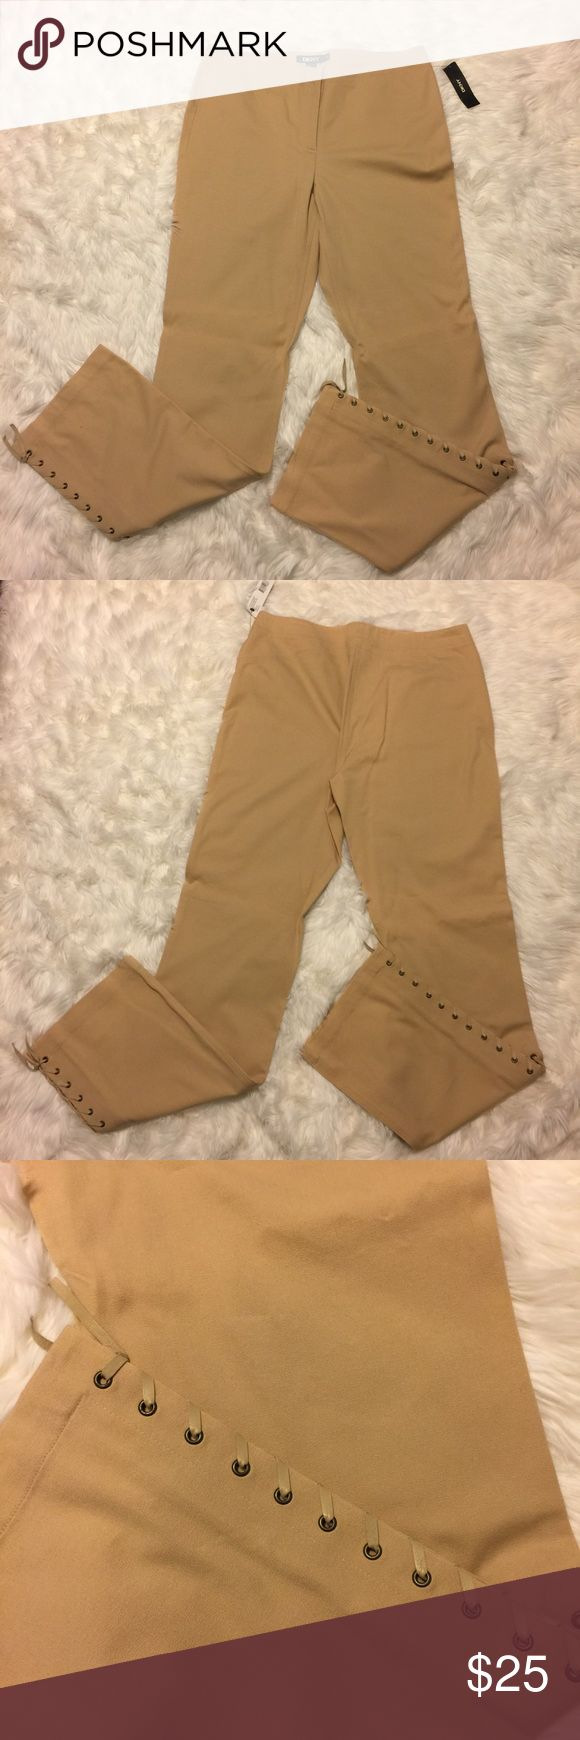 """DKNY Lace Up Side Khaki Colored Pants Jeans 10 Great Pant by DKNY. Khaki color pant, almost a jean. Size 10. 10"""" rise 33.5"""" inseam. Never worn, new with tags! 95% cotton, 5% Spandex. Great with a flowy blouse and heals for an easy office to night look! DKNY Pants"""